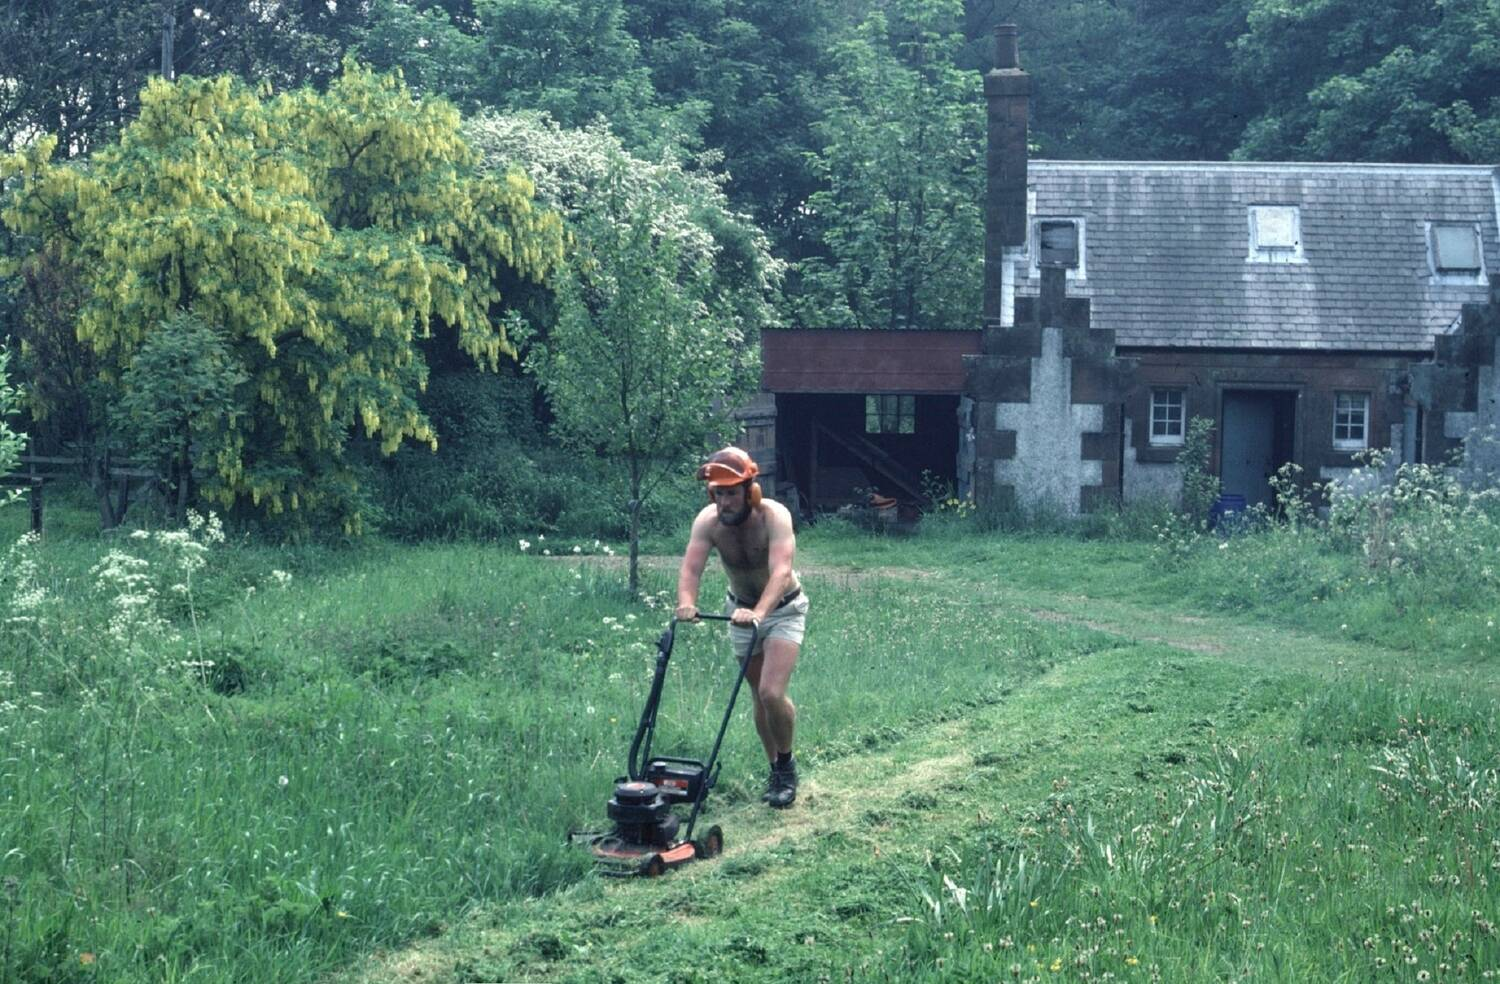 A man mows long grass in a garden on a hot summer's day.